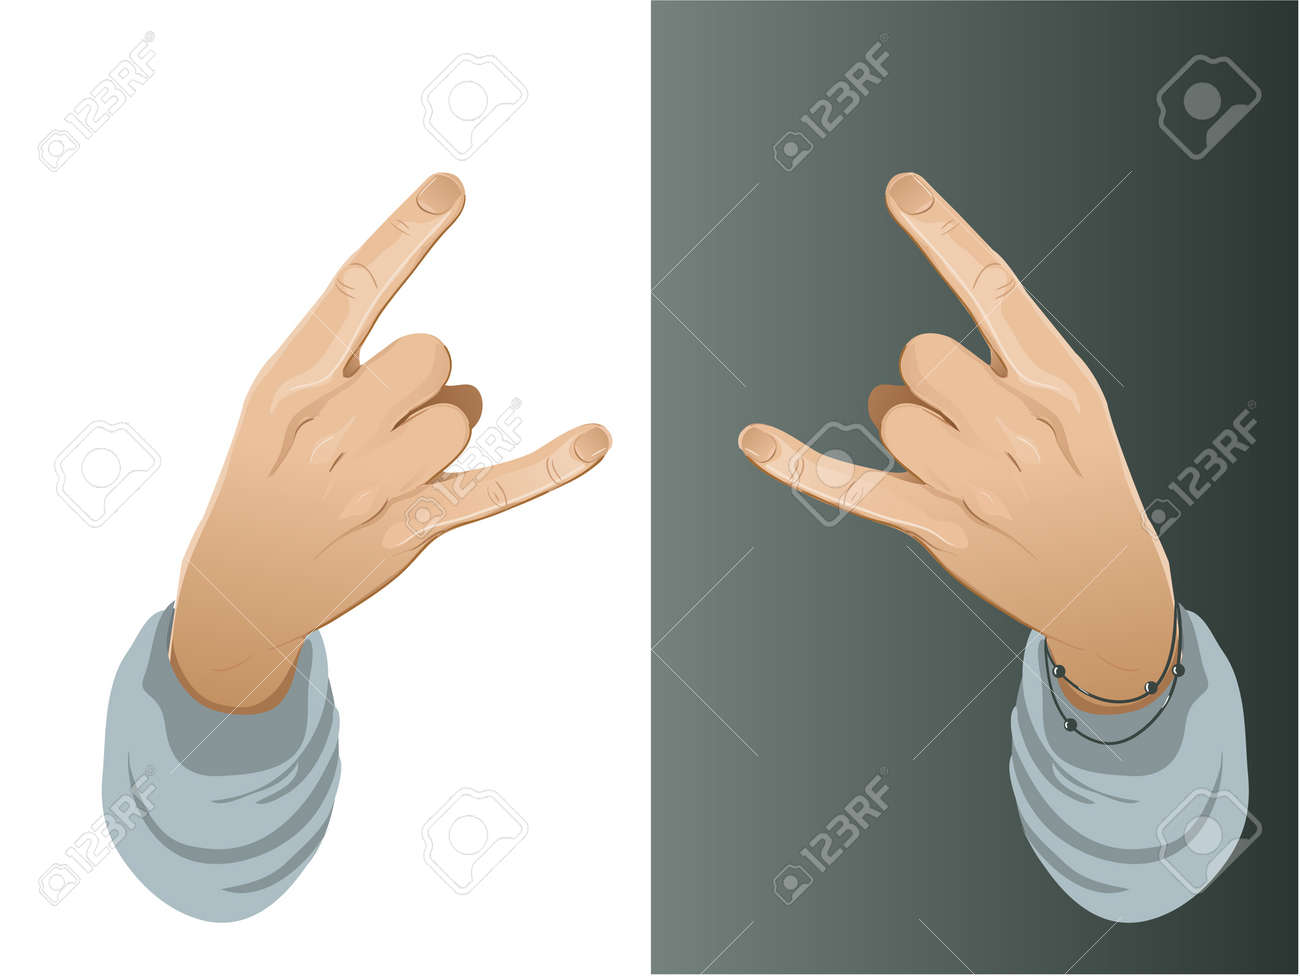 Hand with a hip hop yo gesture royalty free cliparts vectors and hand with a hip hop yo gesture stock vector 12481067 buycottarizona Images